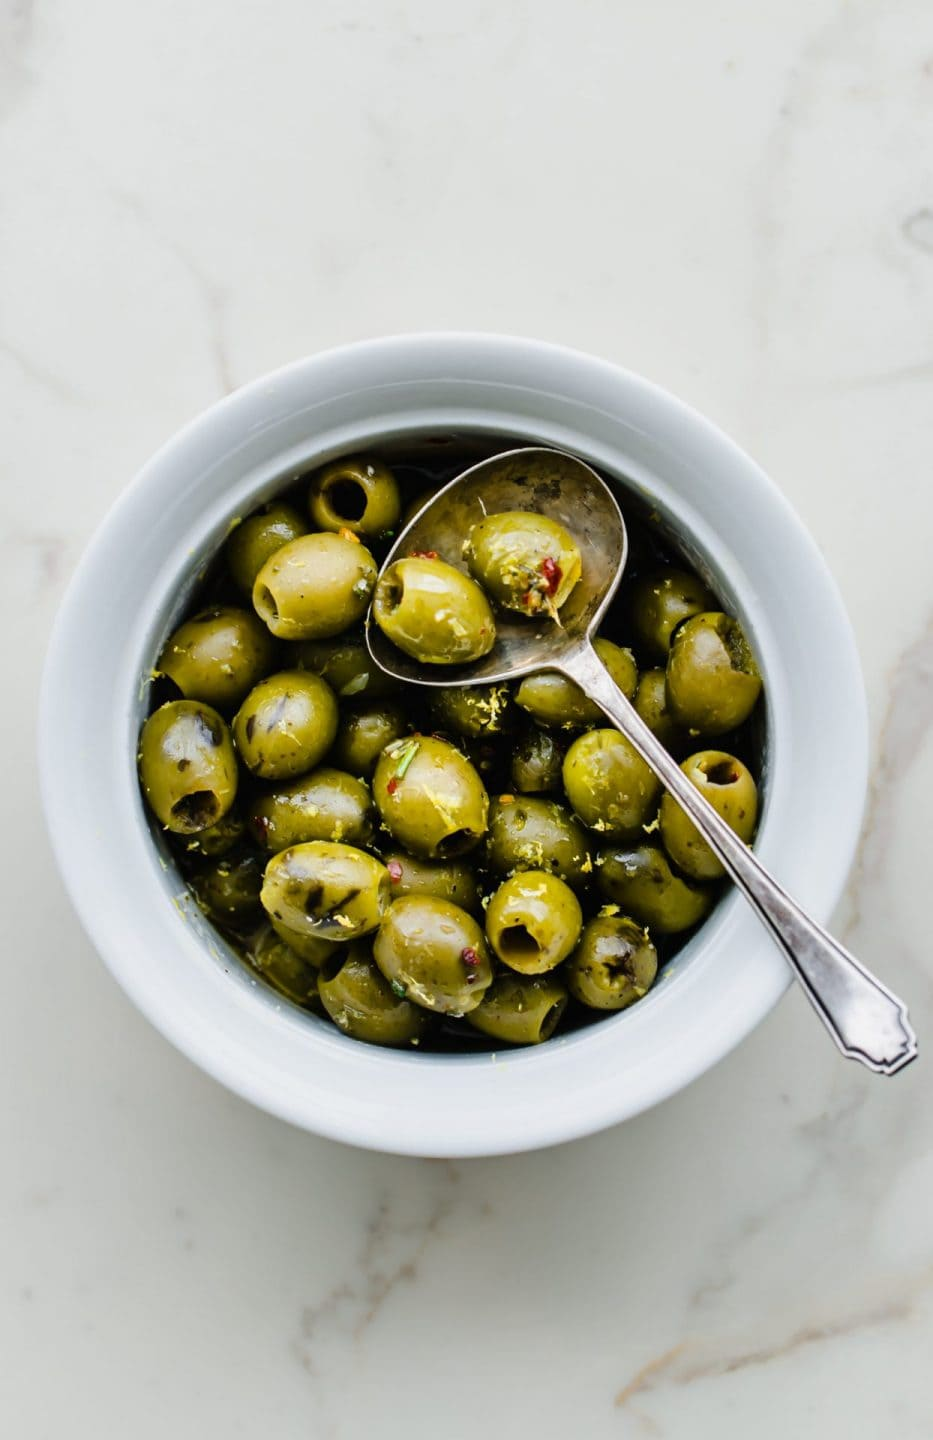 A white bowl filled with warm olives with lemon and rosemary with an antique spoon on the side.